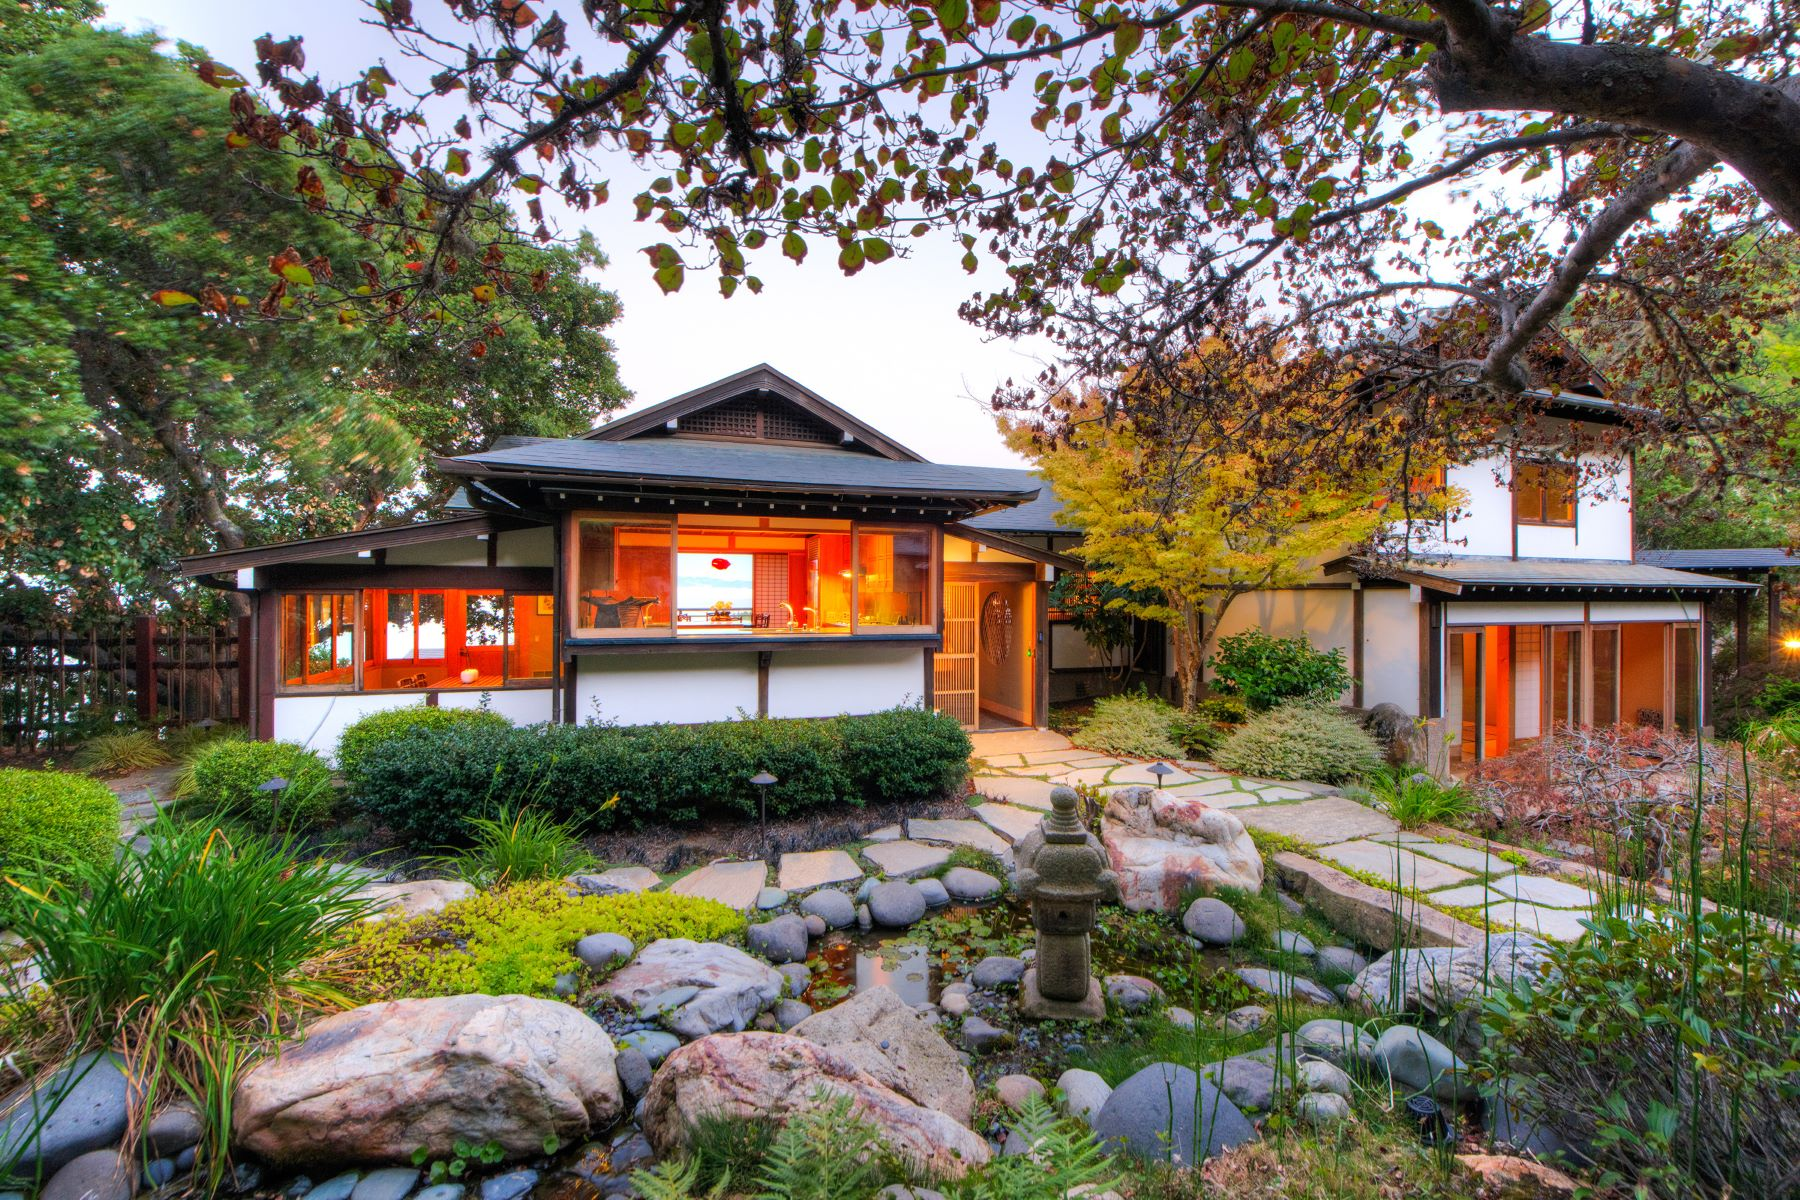 Single Family Home for Sale at Artful Japanese Living 63 Norman Way Tiburon, California 94920 United States